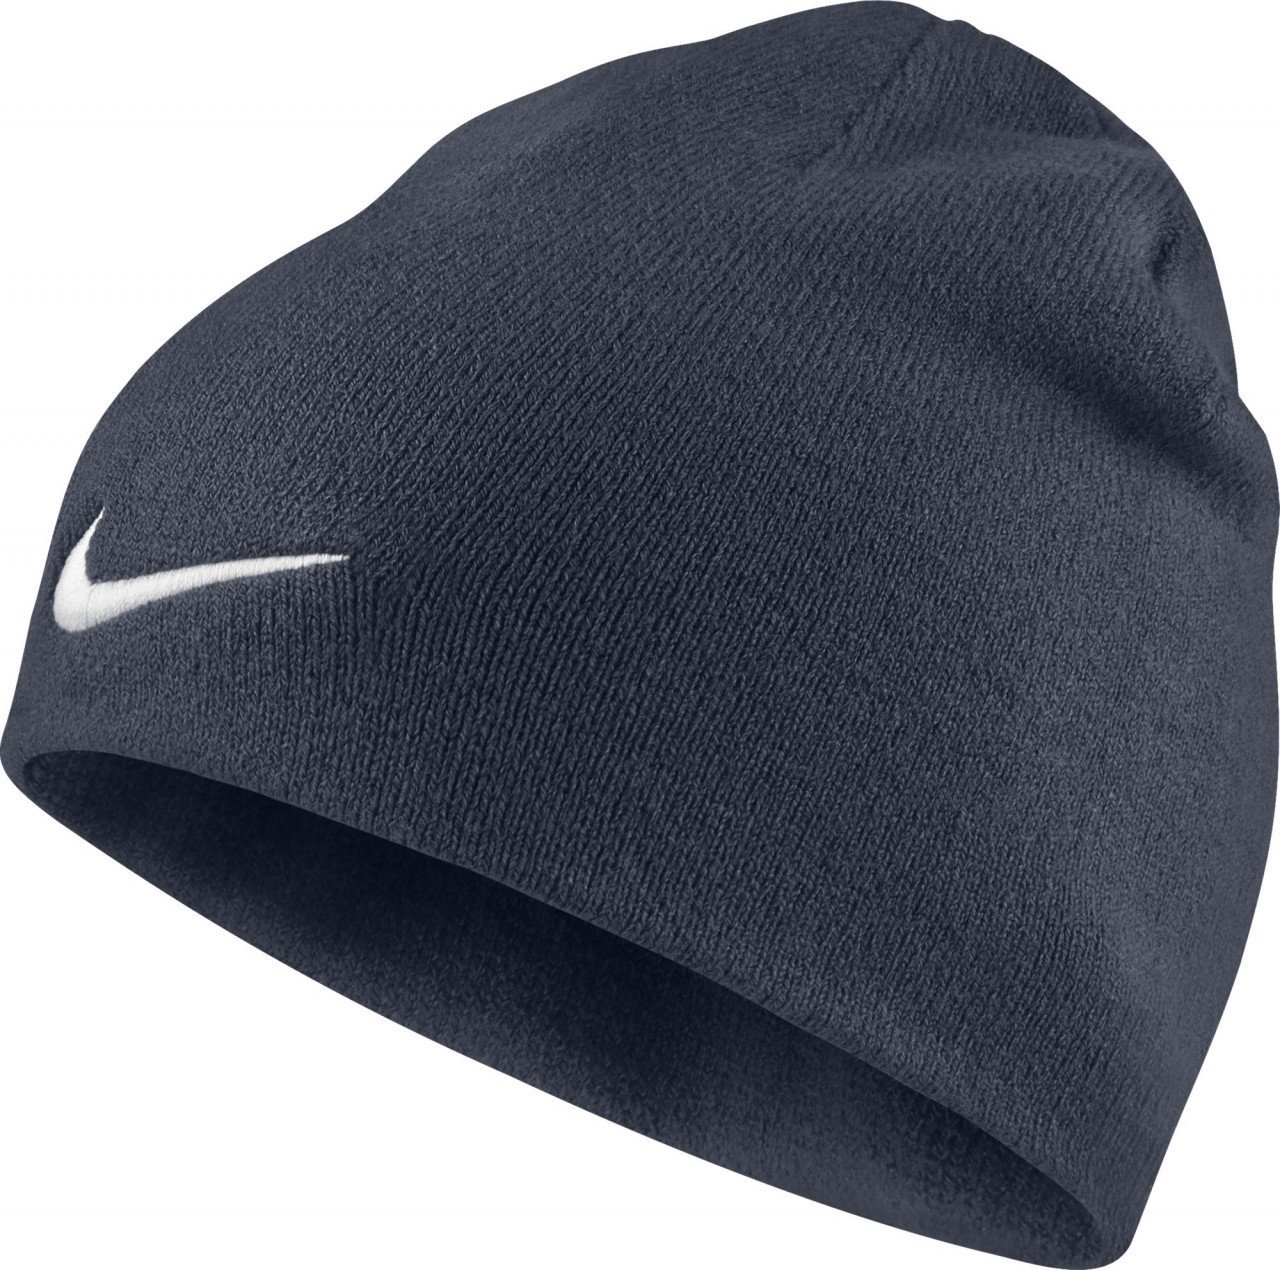 Details about Nike Team Performance Beanie Navy Blue Hat White Tick Swoosh  Adult Unisex Winter ed1037bb87e1